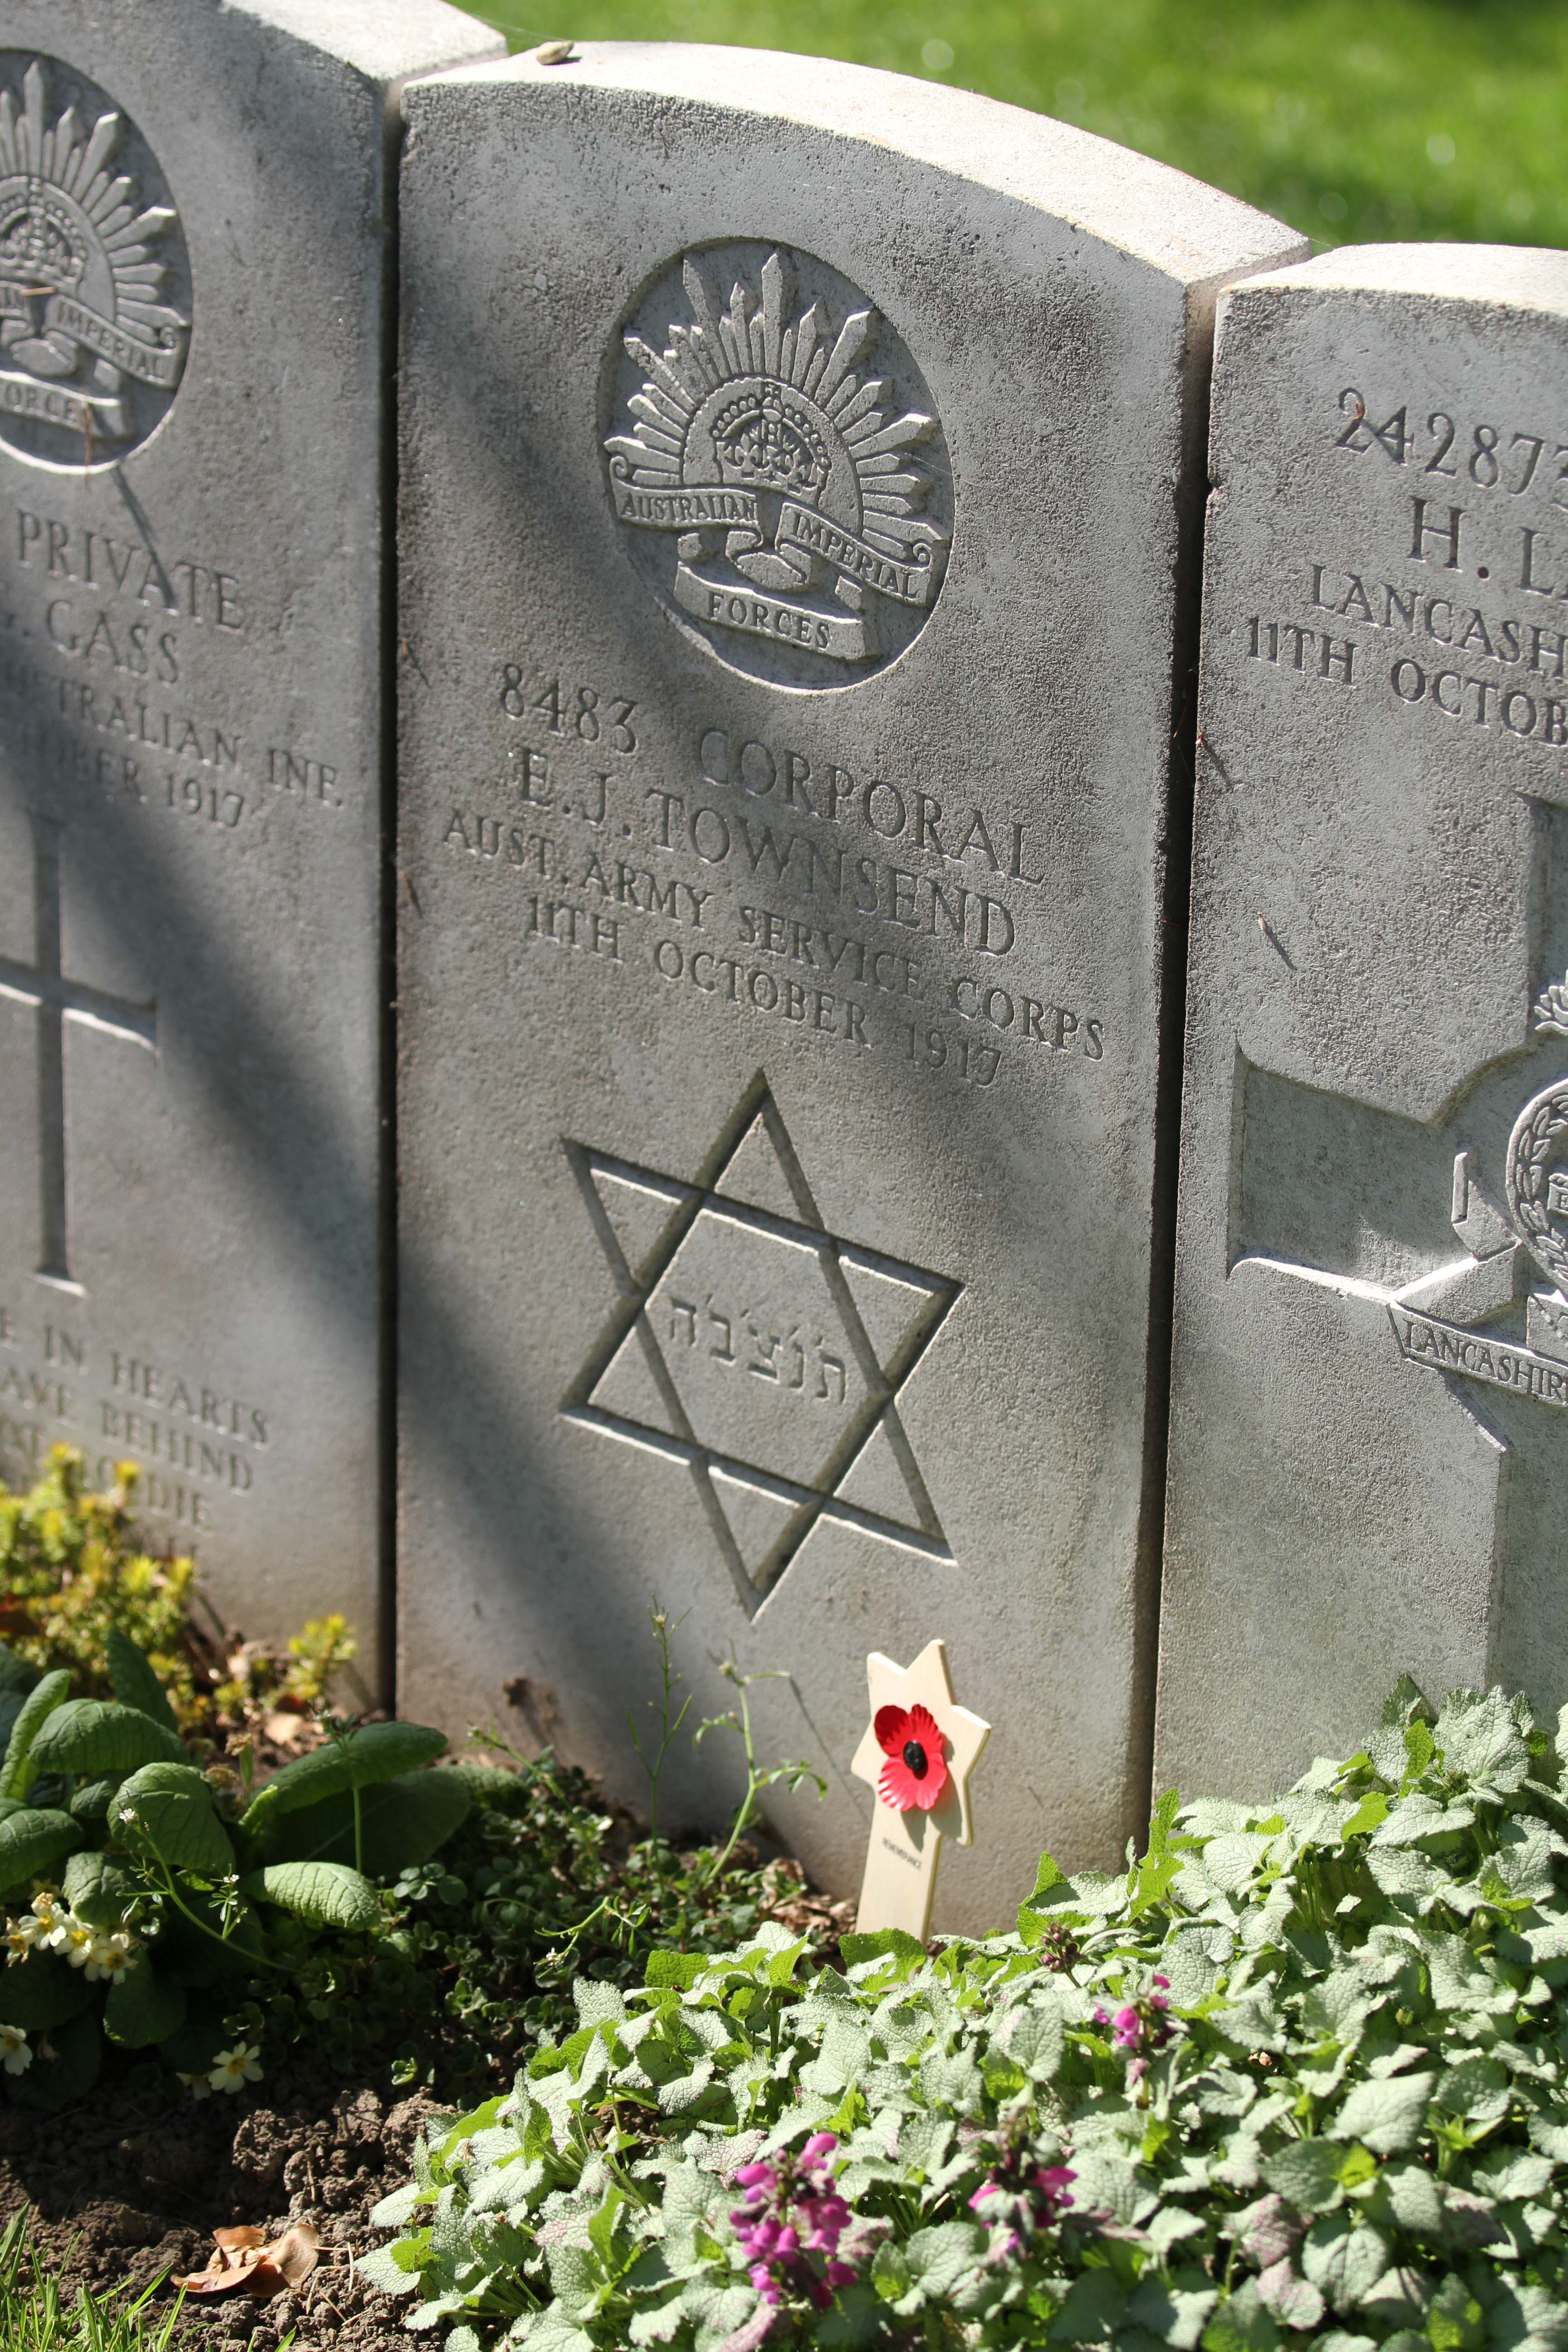 E Townsend grave + Magen David.  We Were There Too trip to Ypres, April 2017. By Alan Brill, Voluntary Photographer